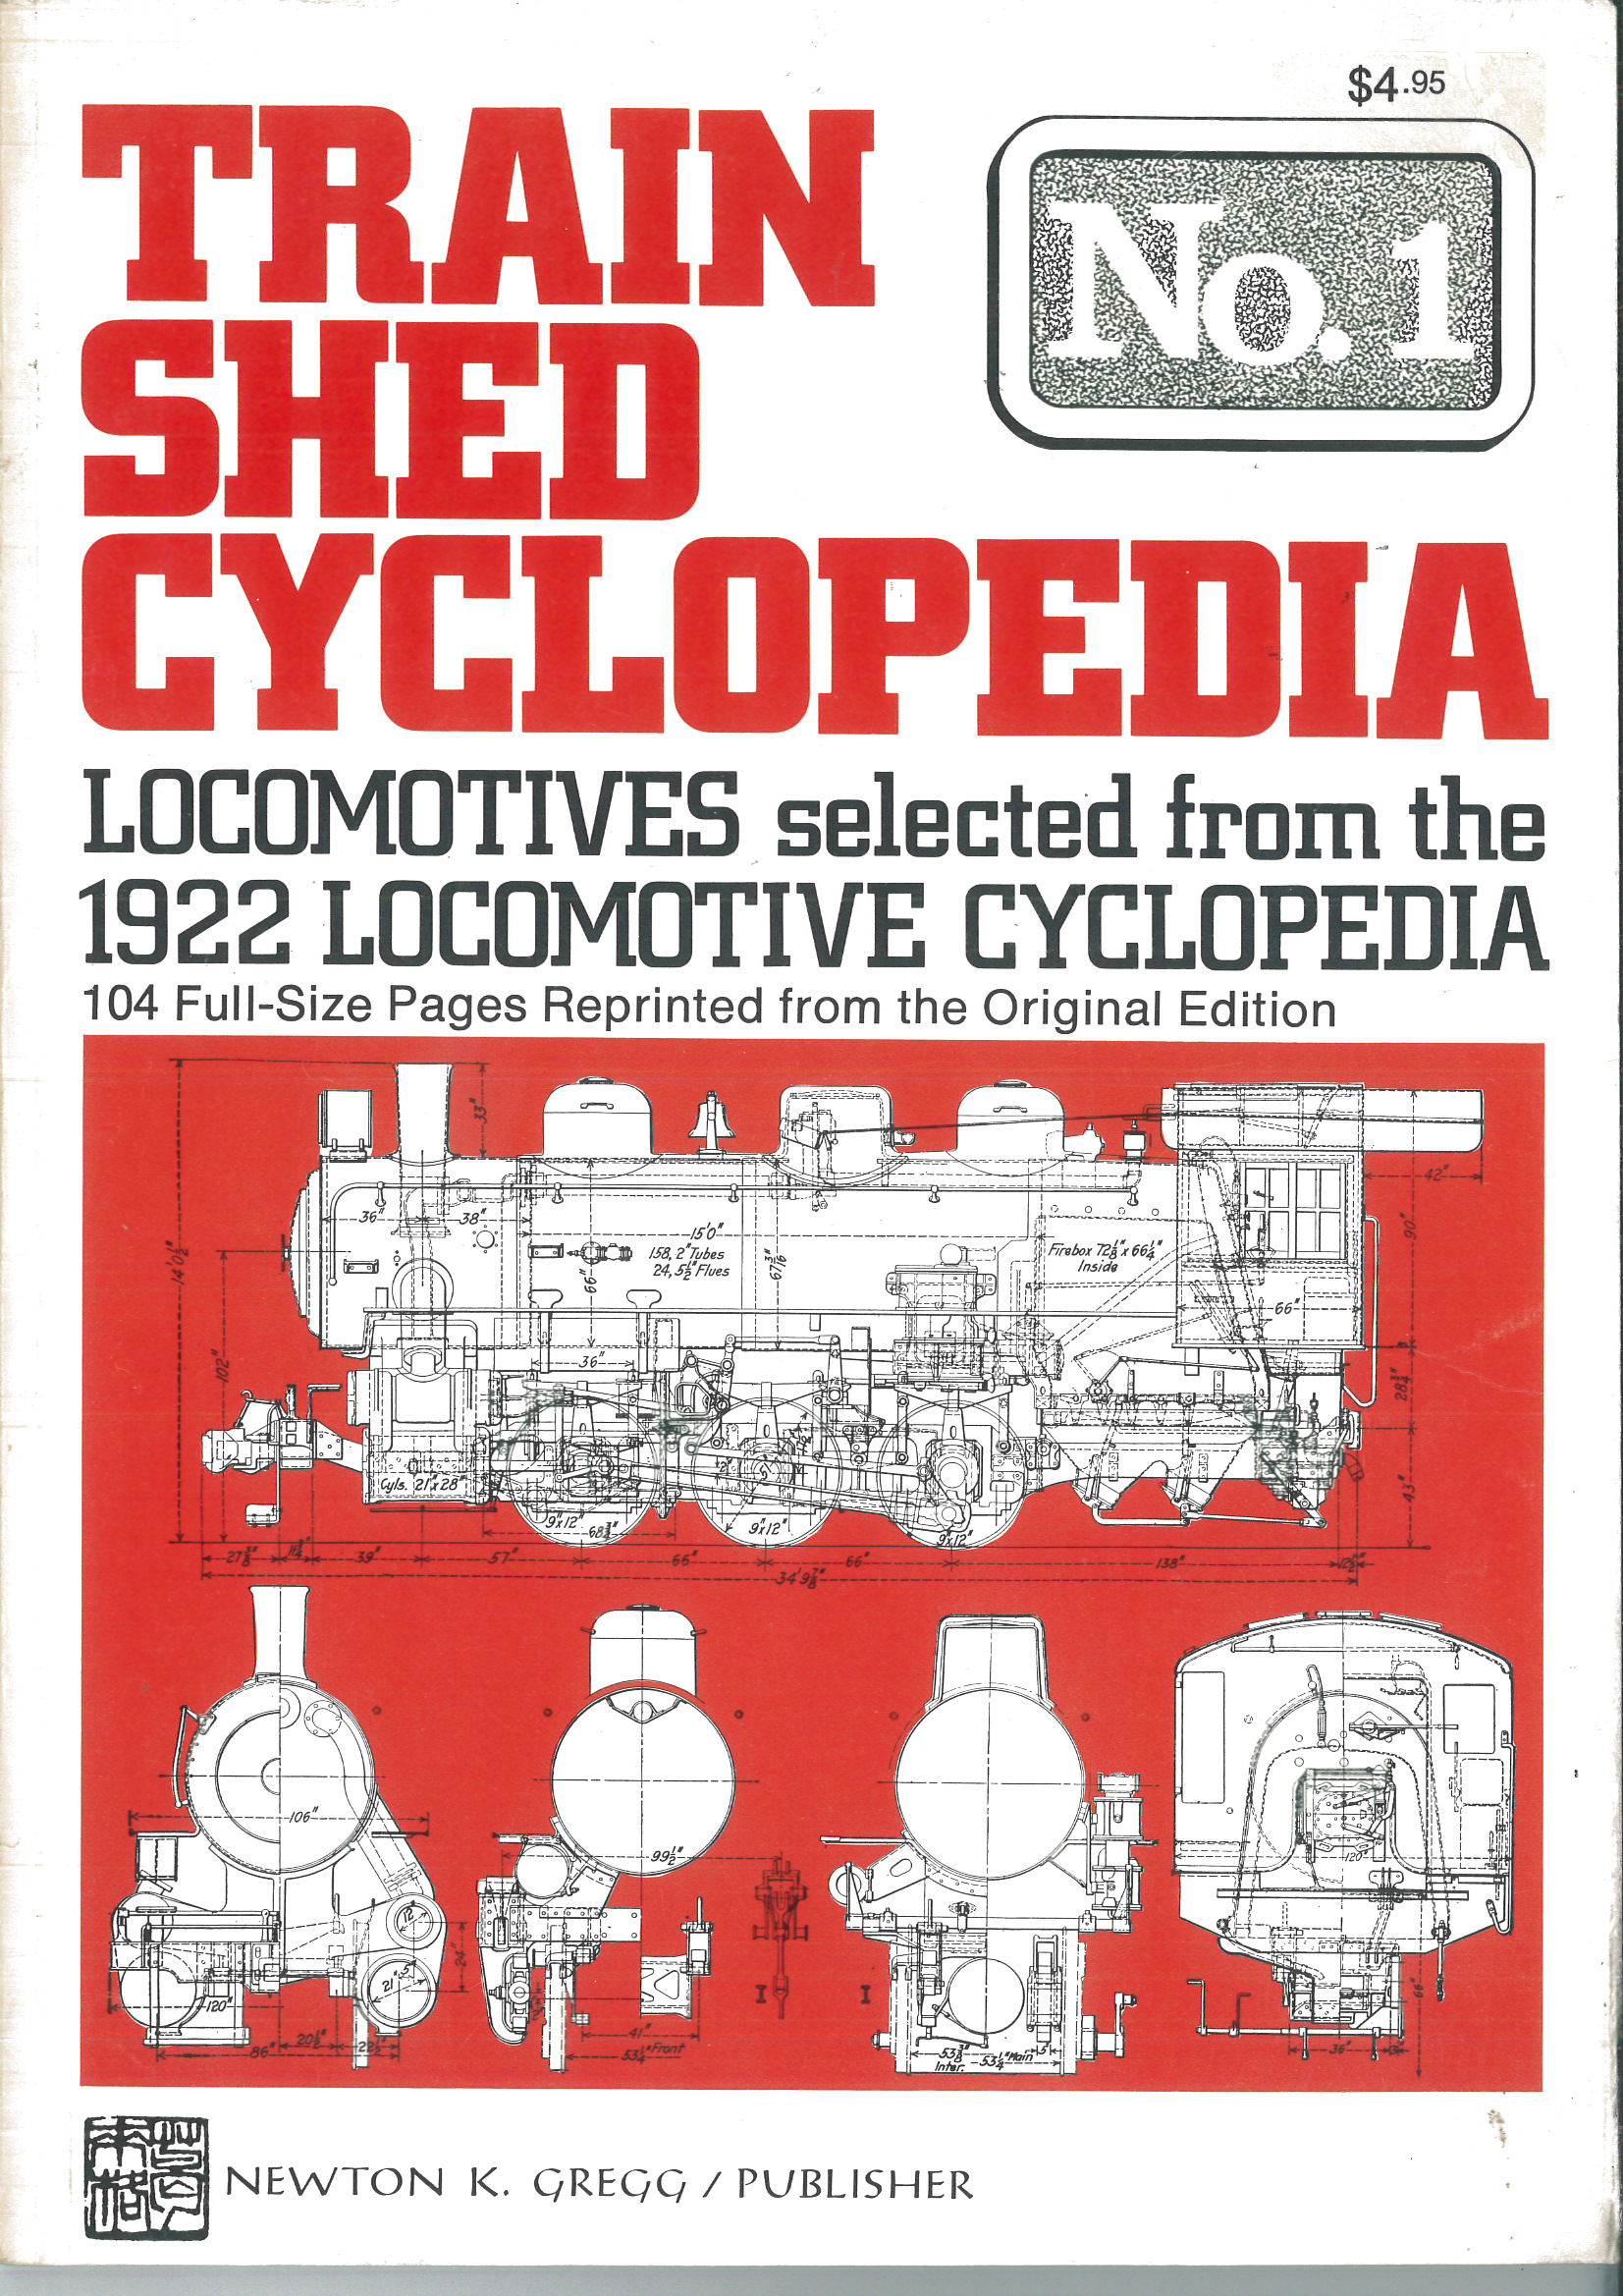 Train Shed Cyclopedia No. 1: Locomotives from the 1922 Cyclopedia  | günstig bestellen bei Modelleisenbahn Center  MCS Vertriebs GmbH